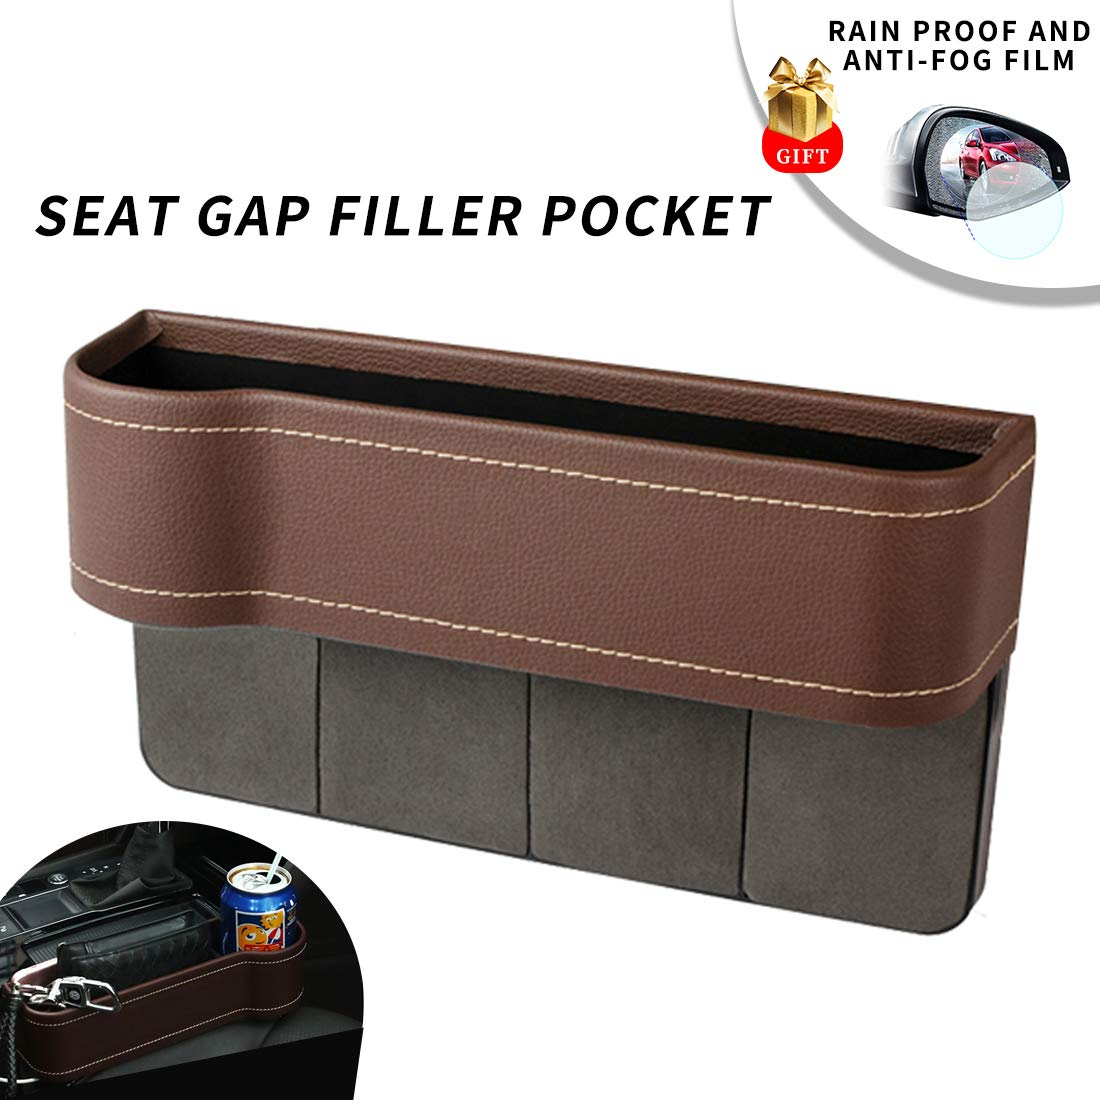 PU Leather Car Seat Gap Filler Organizer Catcher, Center Console Side Pocket with Cup Holder, Pack of 1 (Beige) Huashi